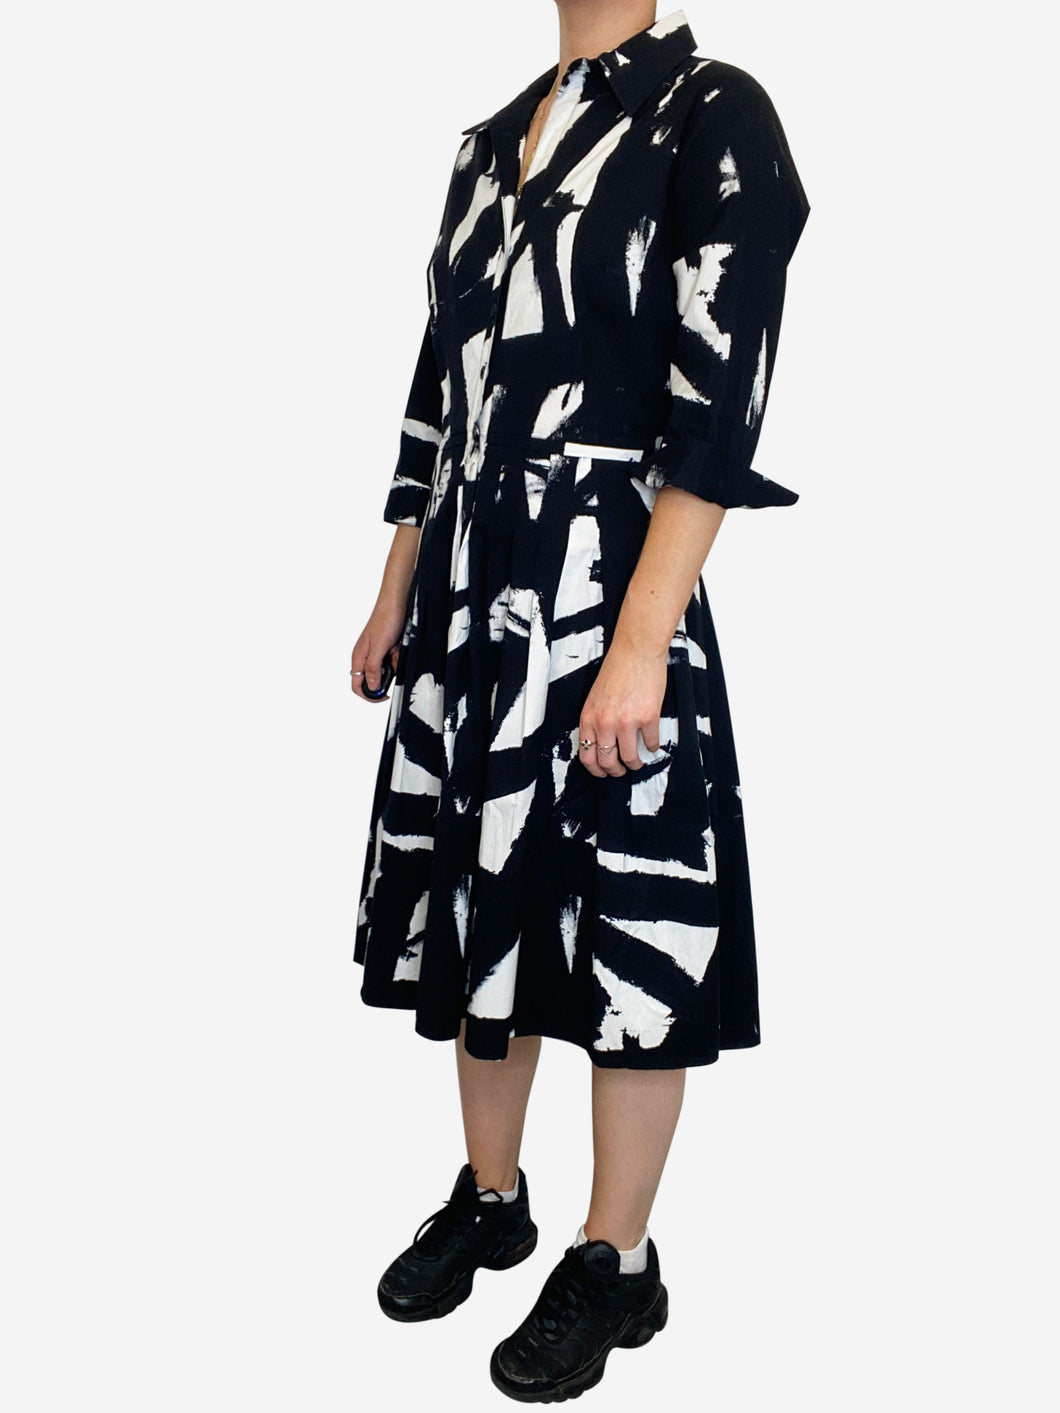 Black & White 3/4 sleeves black and white pleated midi dress - size 10